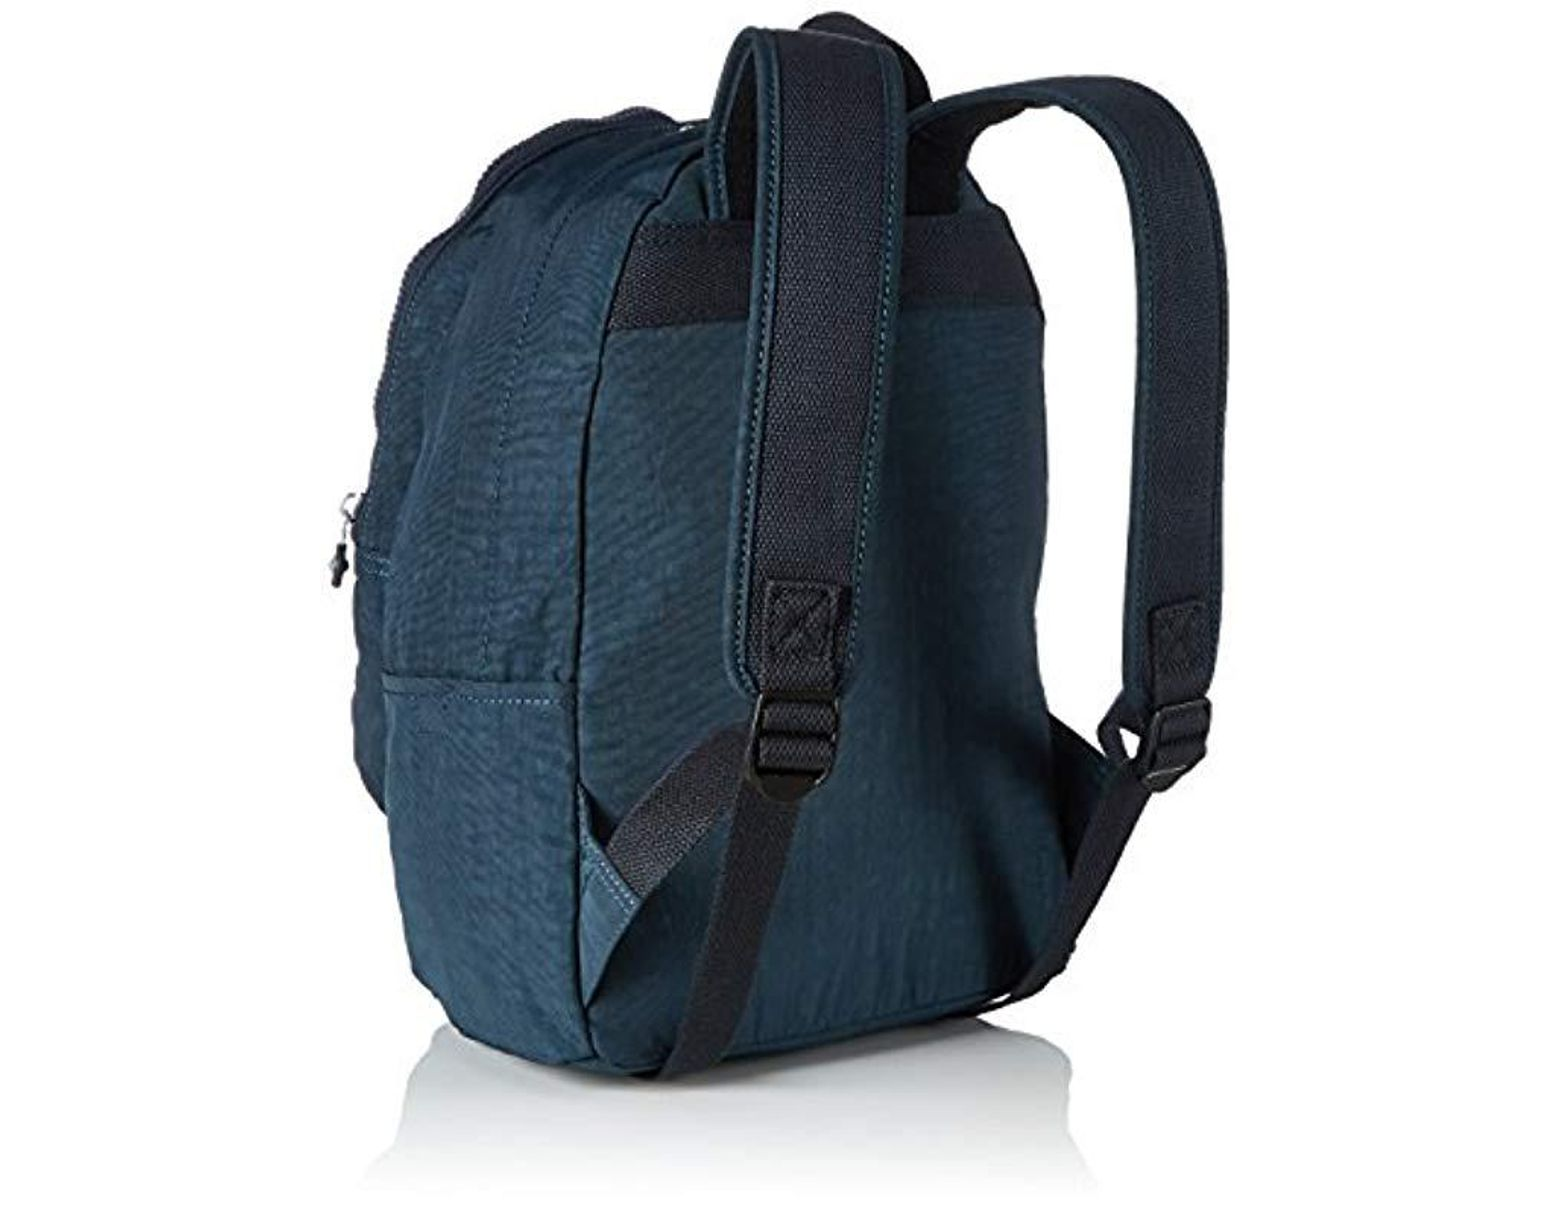 de3550379e Kipling Clas Challenger Backpack Handbags in Blue - Save 6% - Lyst